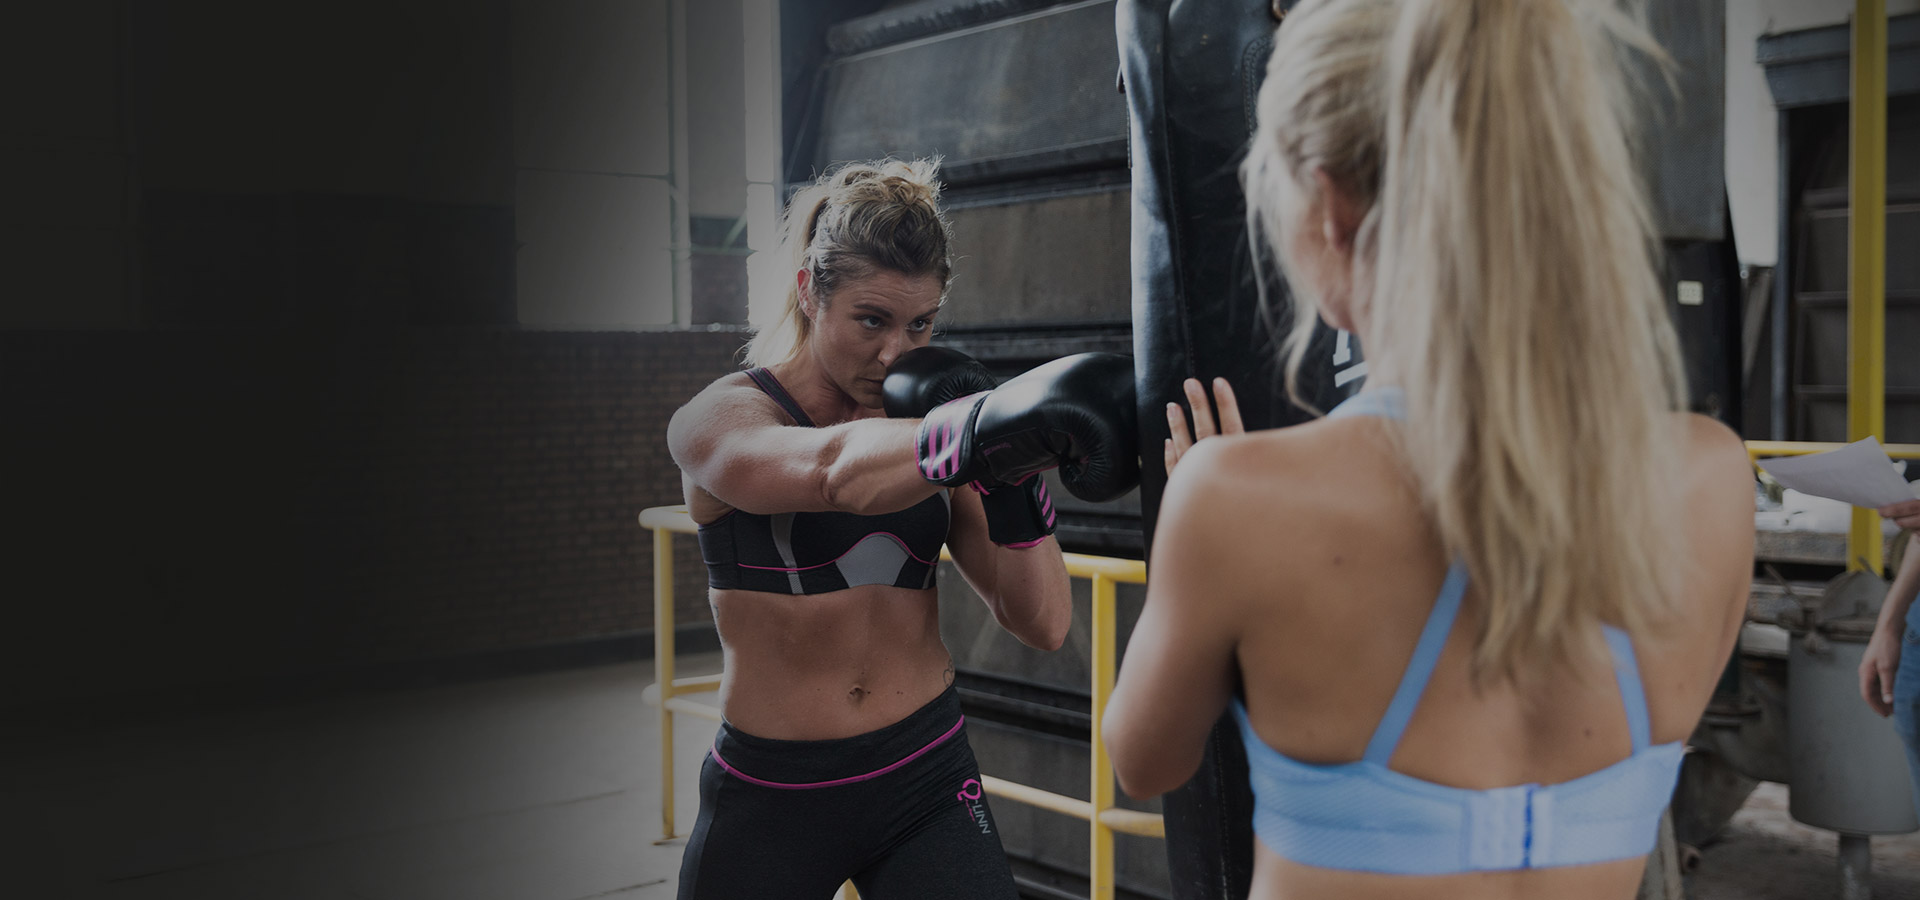 Sports bras with superior comfort for active women